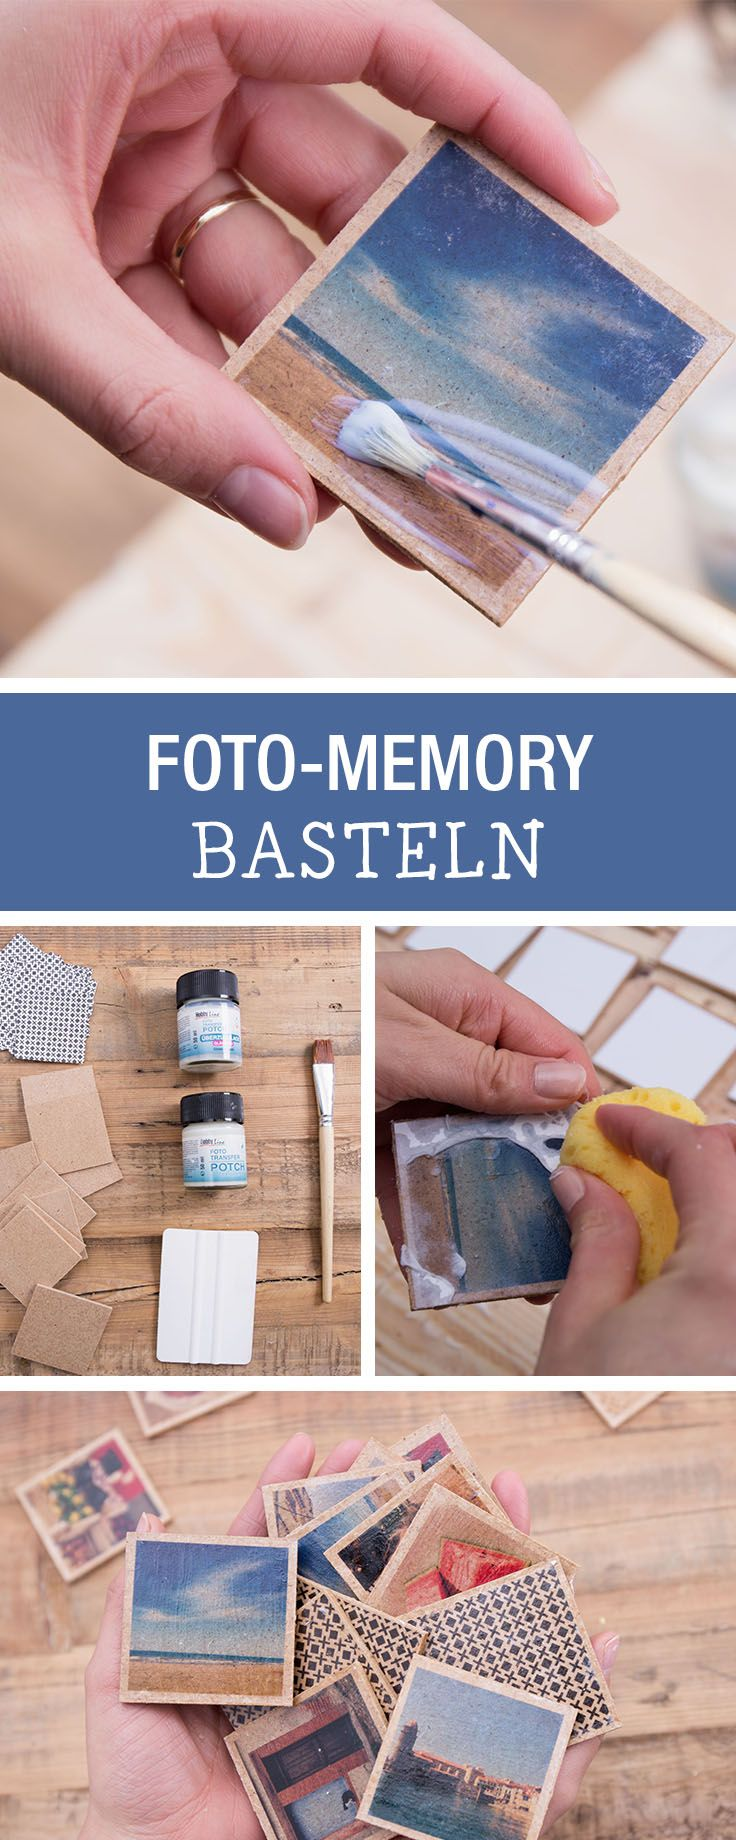 diy anleitung foto memory mit besonderen erinnerungen. Black Bedroom Furniture Sets. Home Design Ideas